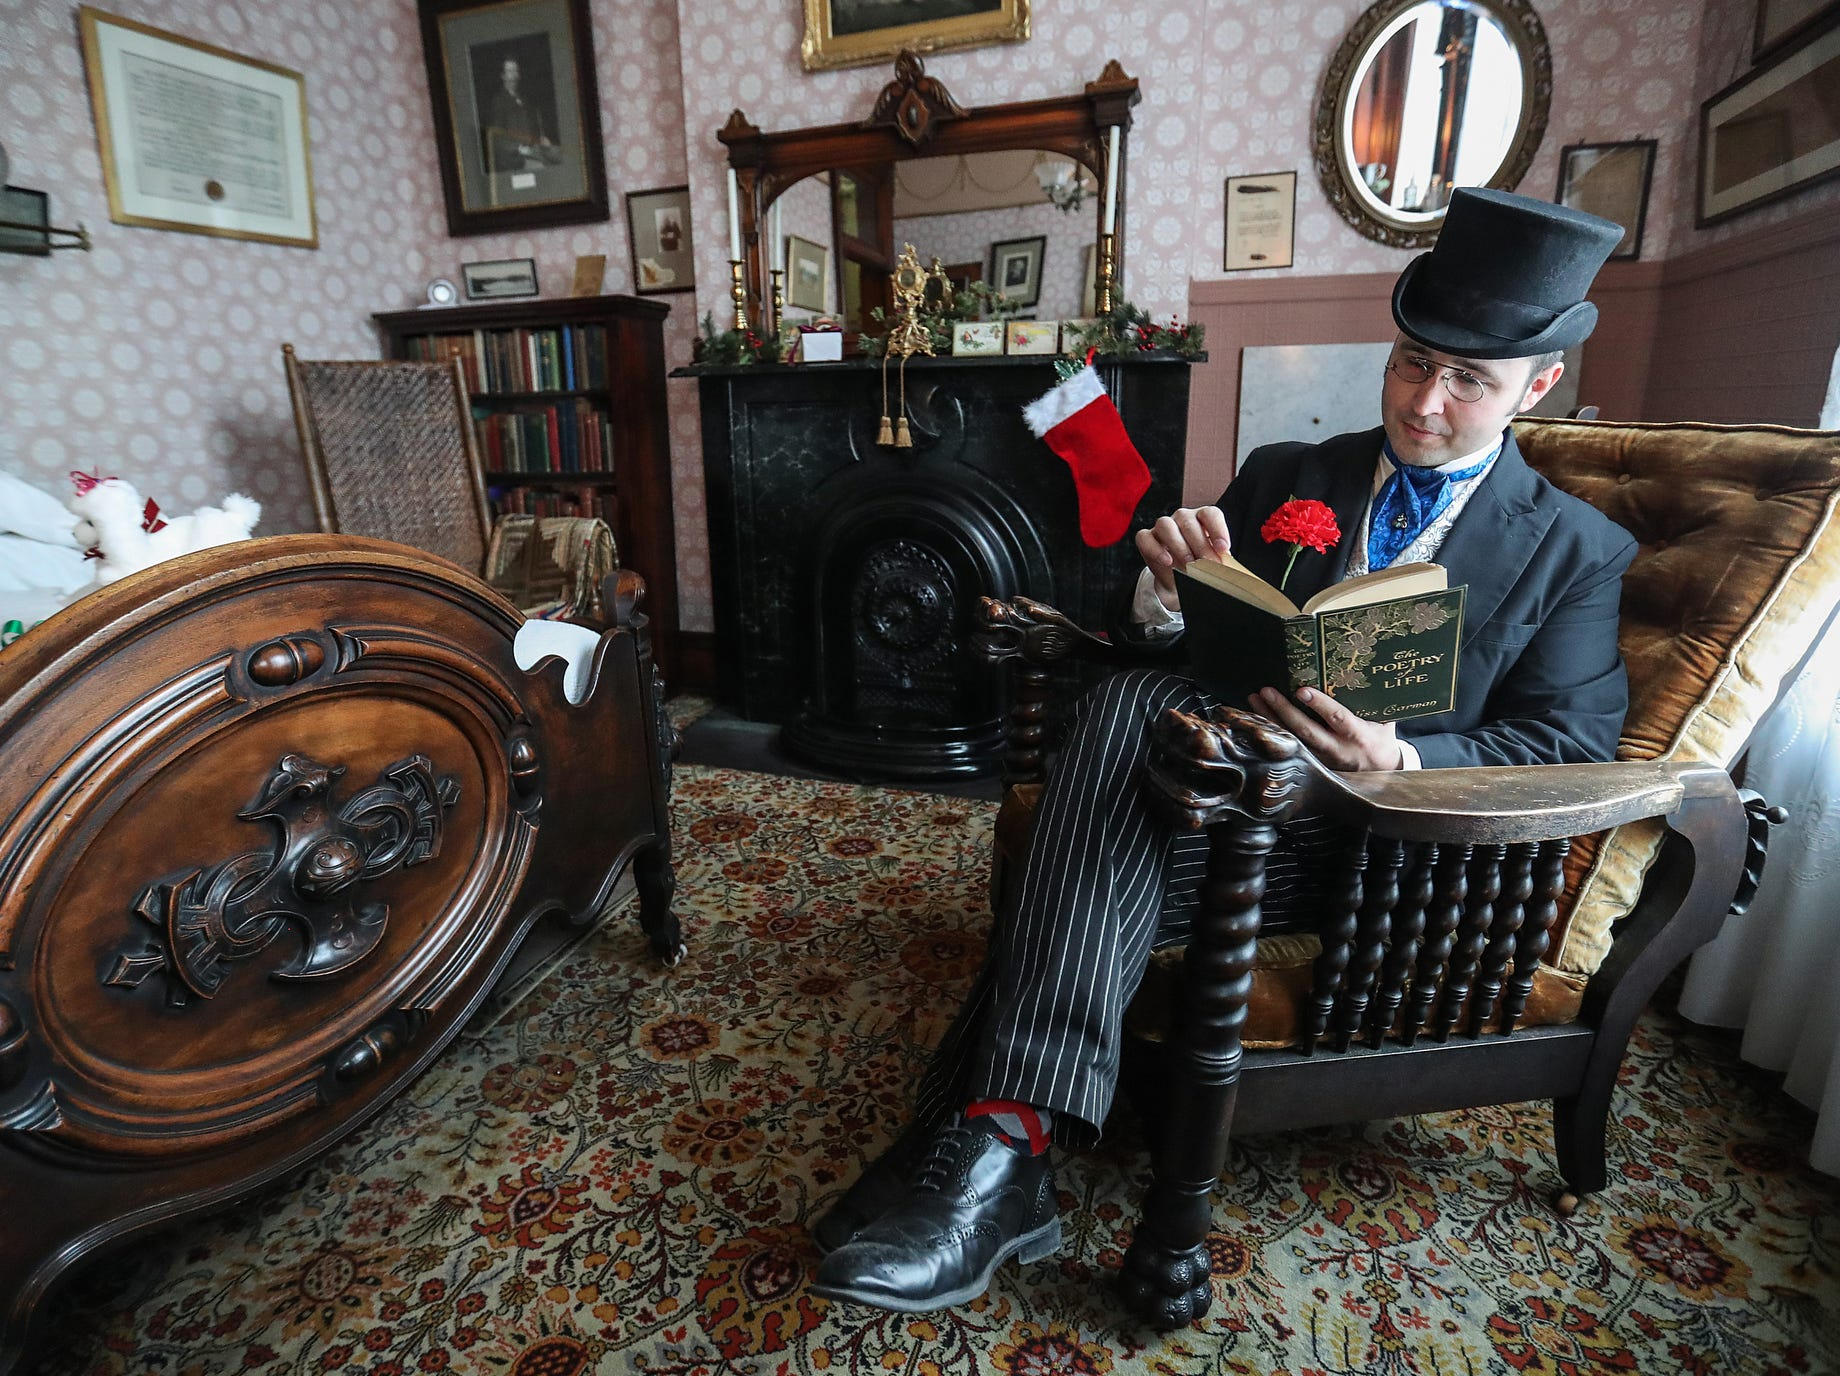 Chadwick Gillenwater poses for a portrait while portraying James Whitcomb Riley in the writer's historic museum home, decorated for a Victorian Christmas open house in Indianapolis, Saturday, Dec. 8, 2018.